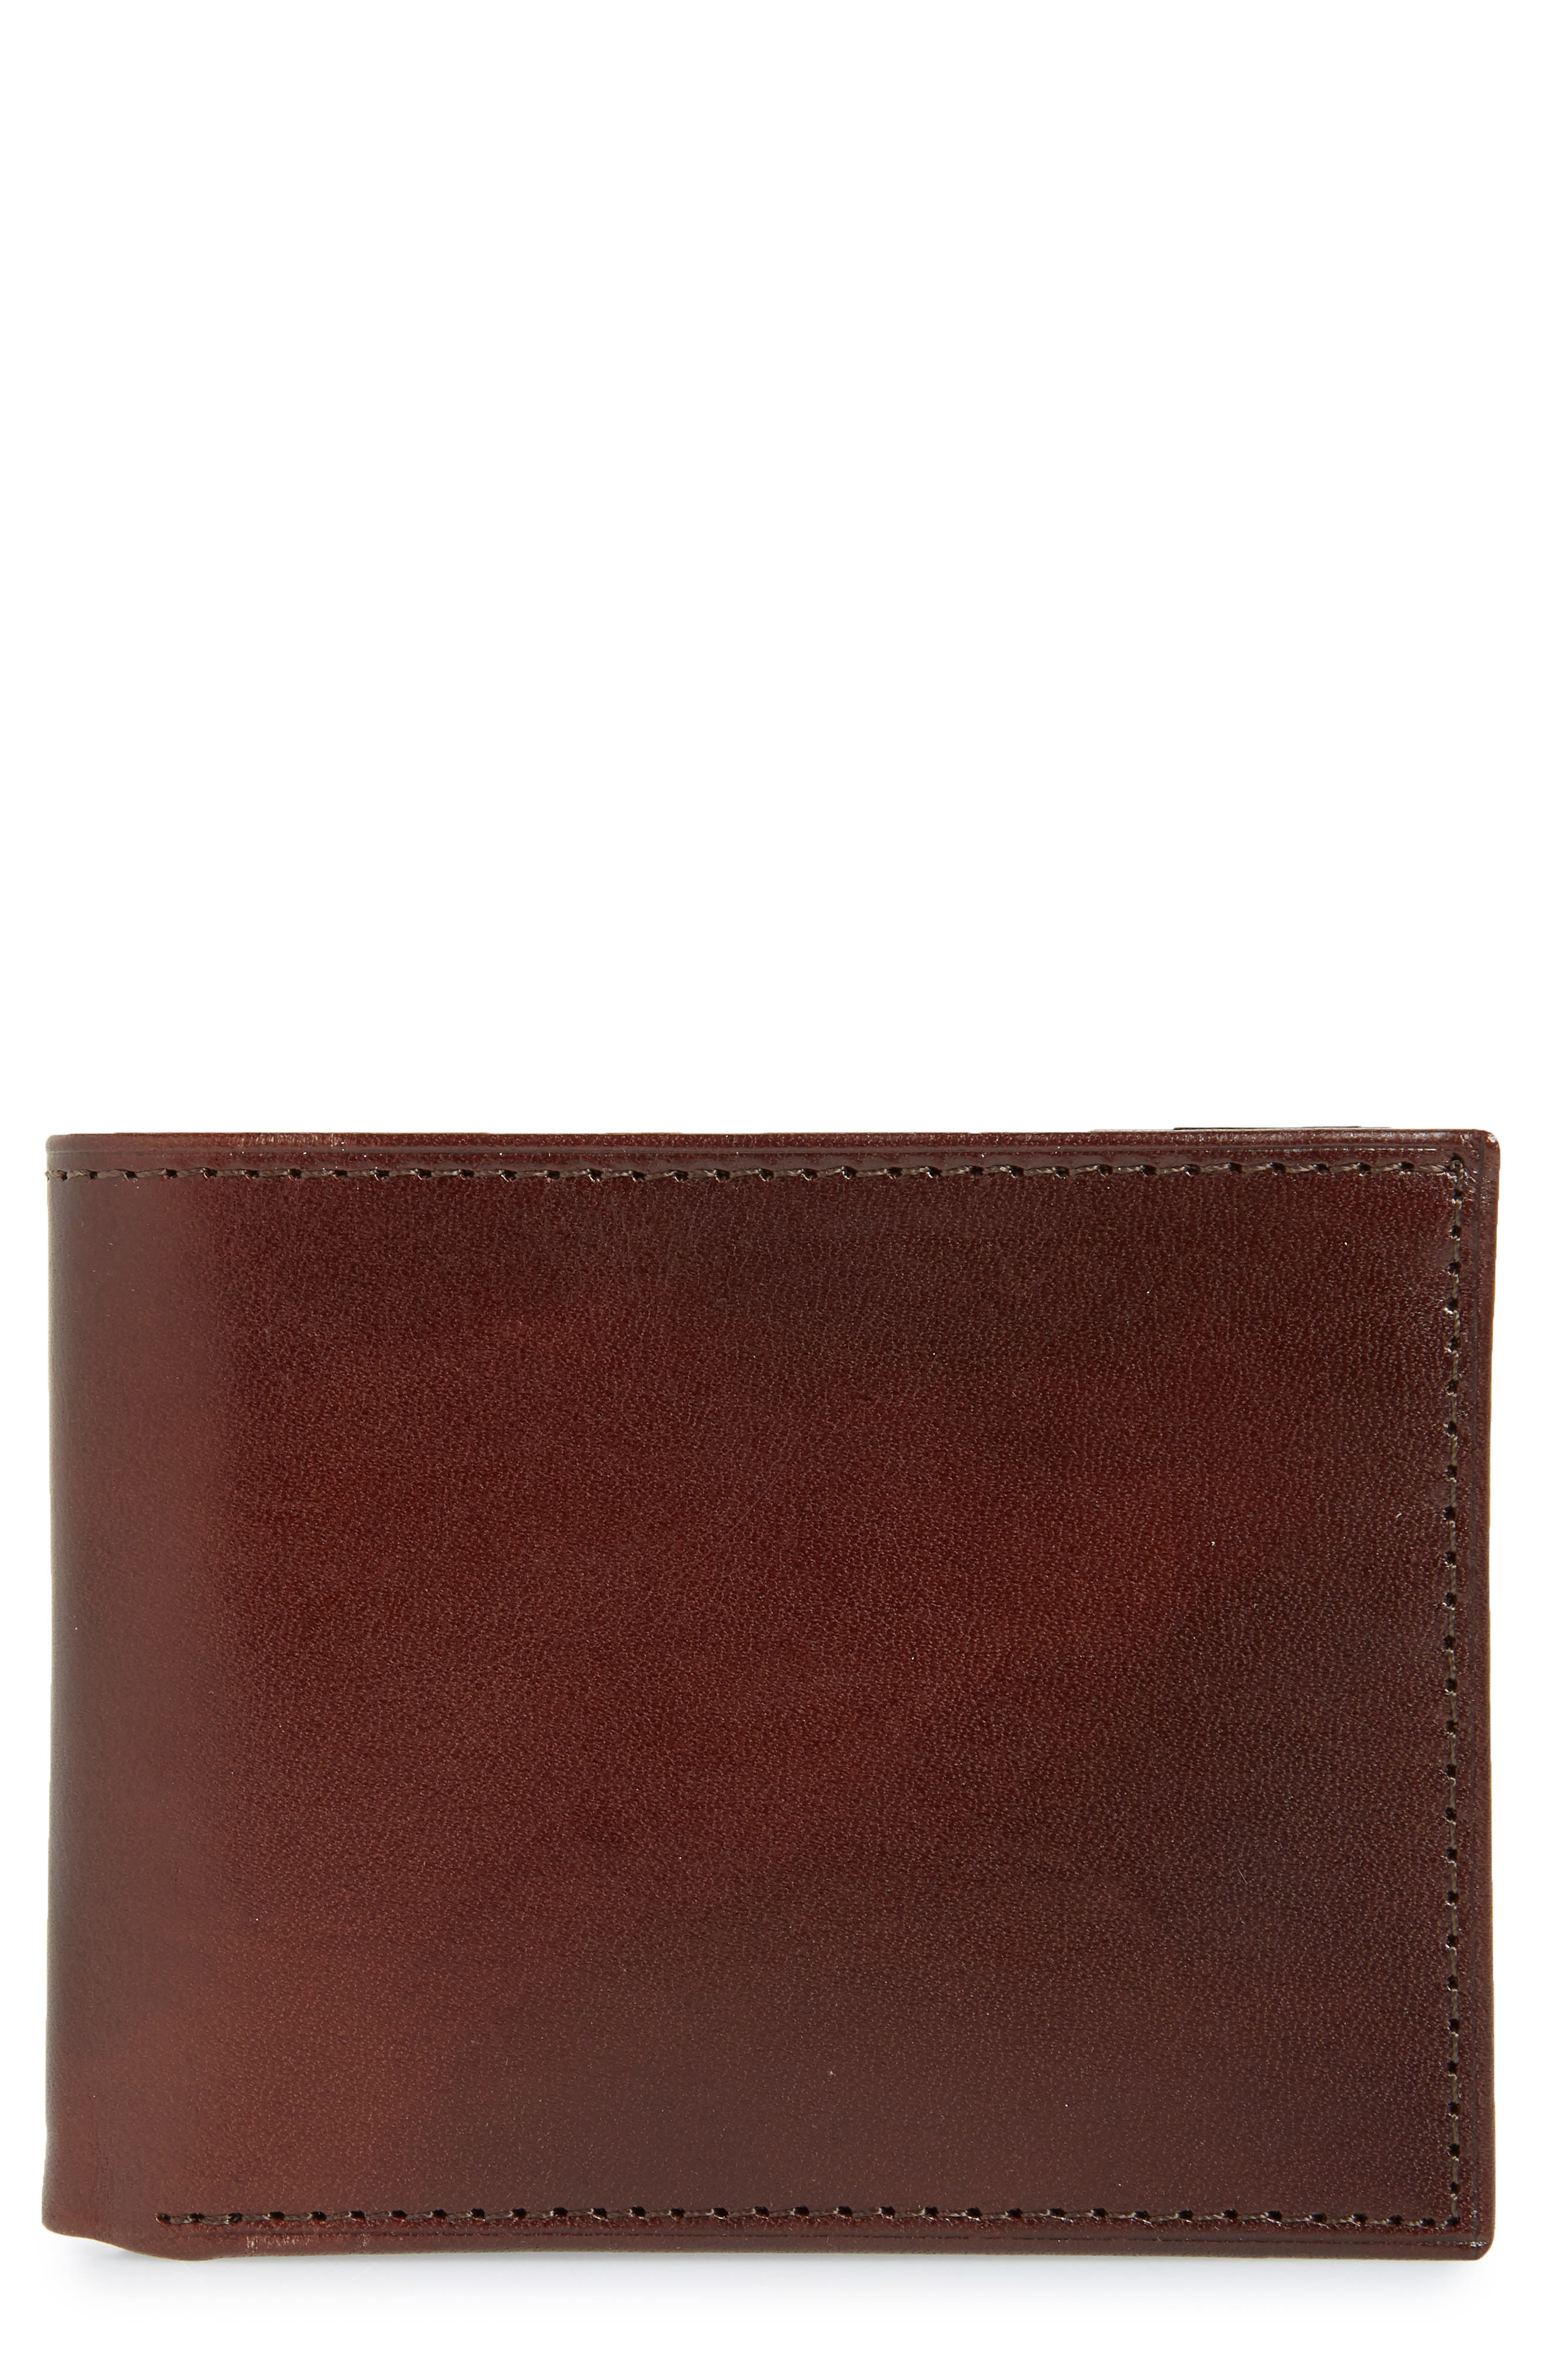 Slimfold Leather Wallet,                             Main thumbnail 1, color,                             200